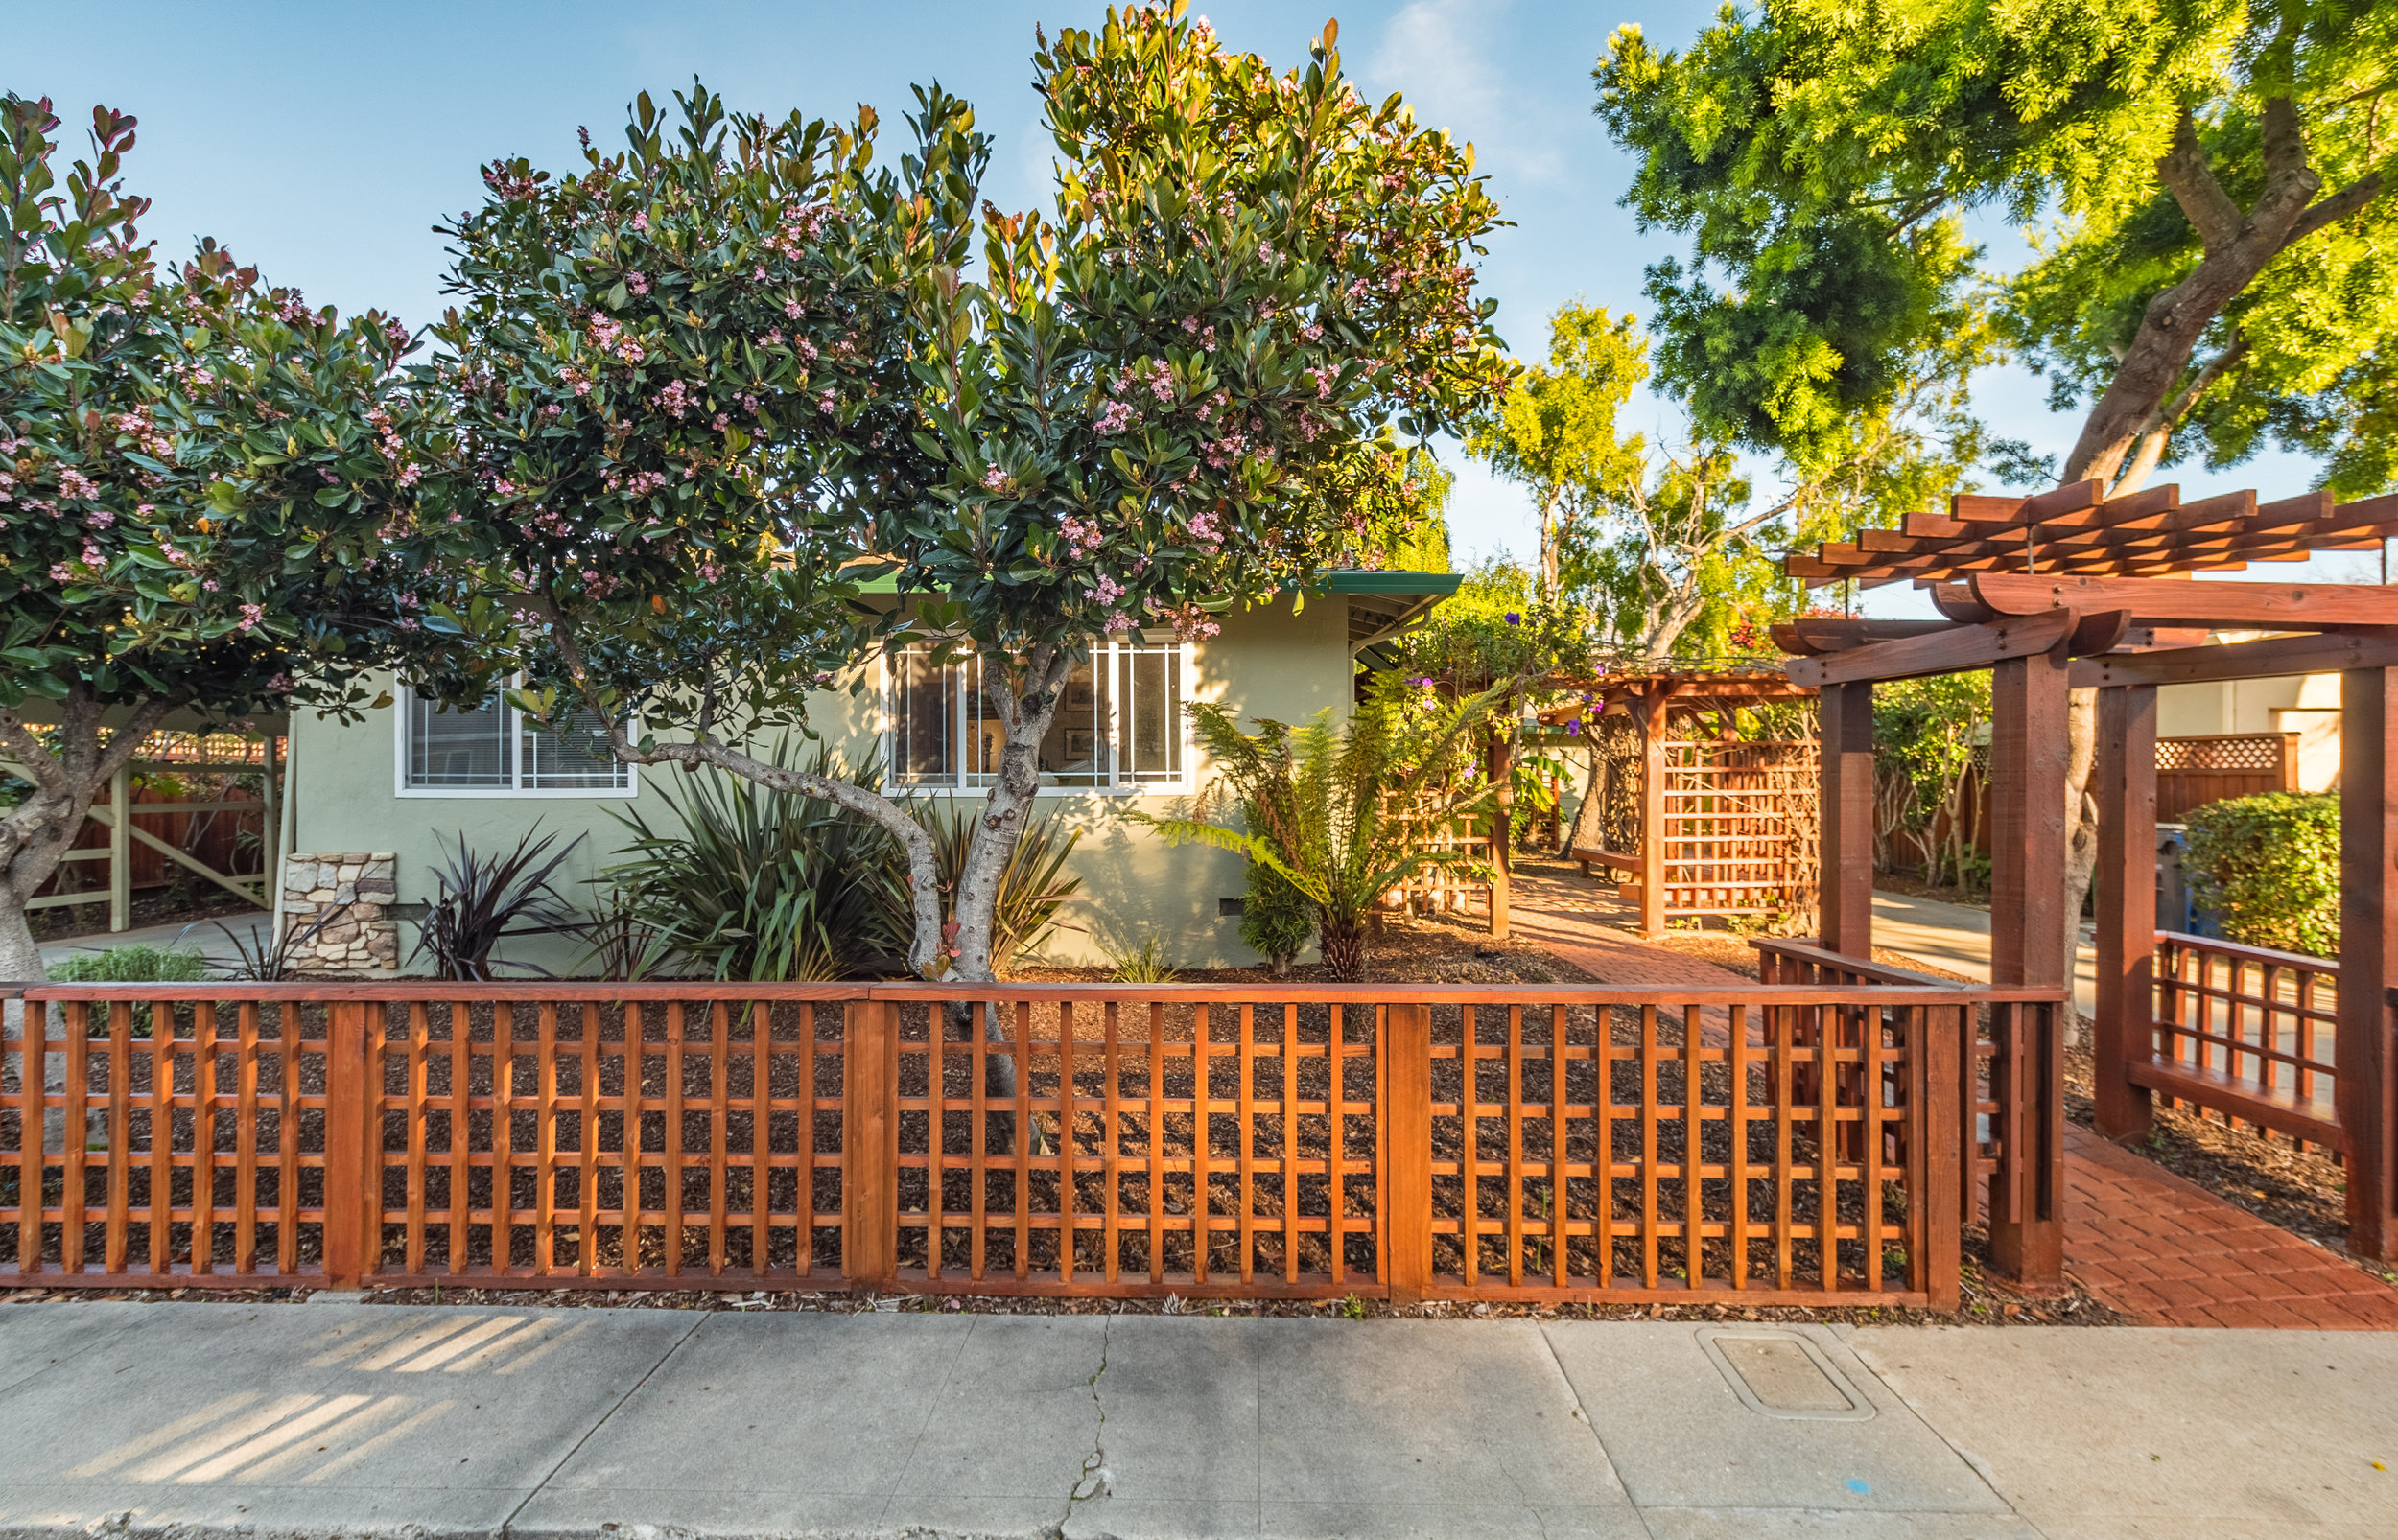 Capitola California Investment Property for Sale.jpg